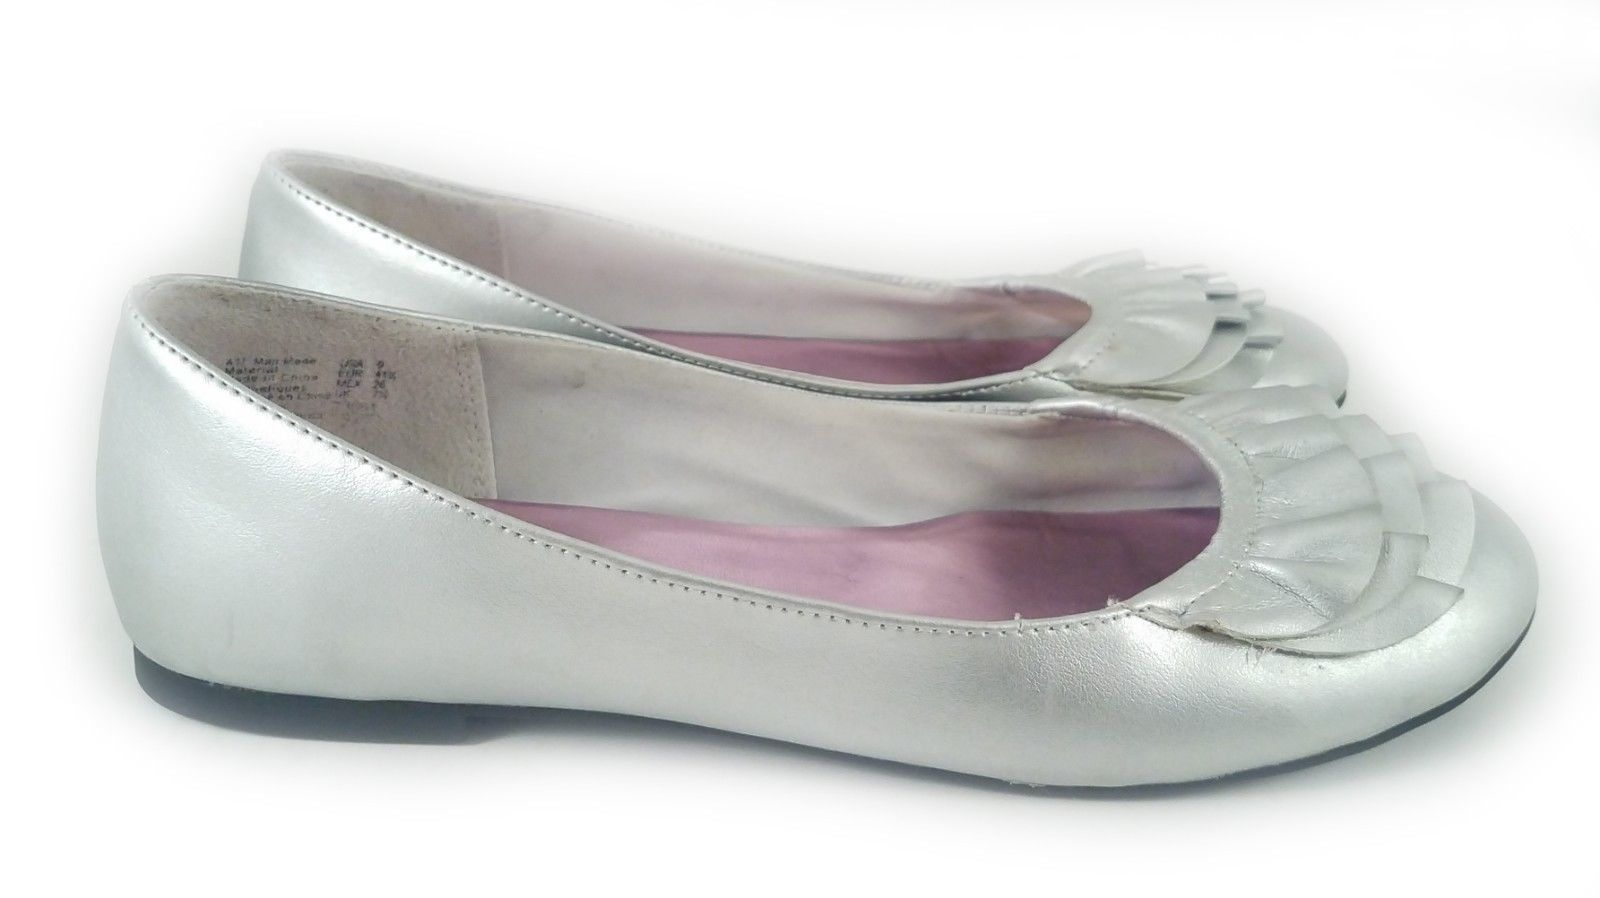 VEGAN American Eagle Silver Slip On Ballet Flats for Women Size 9 US - $15.76